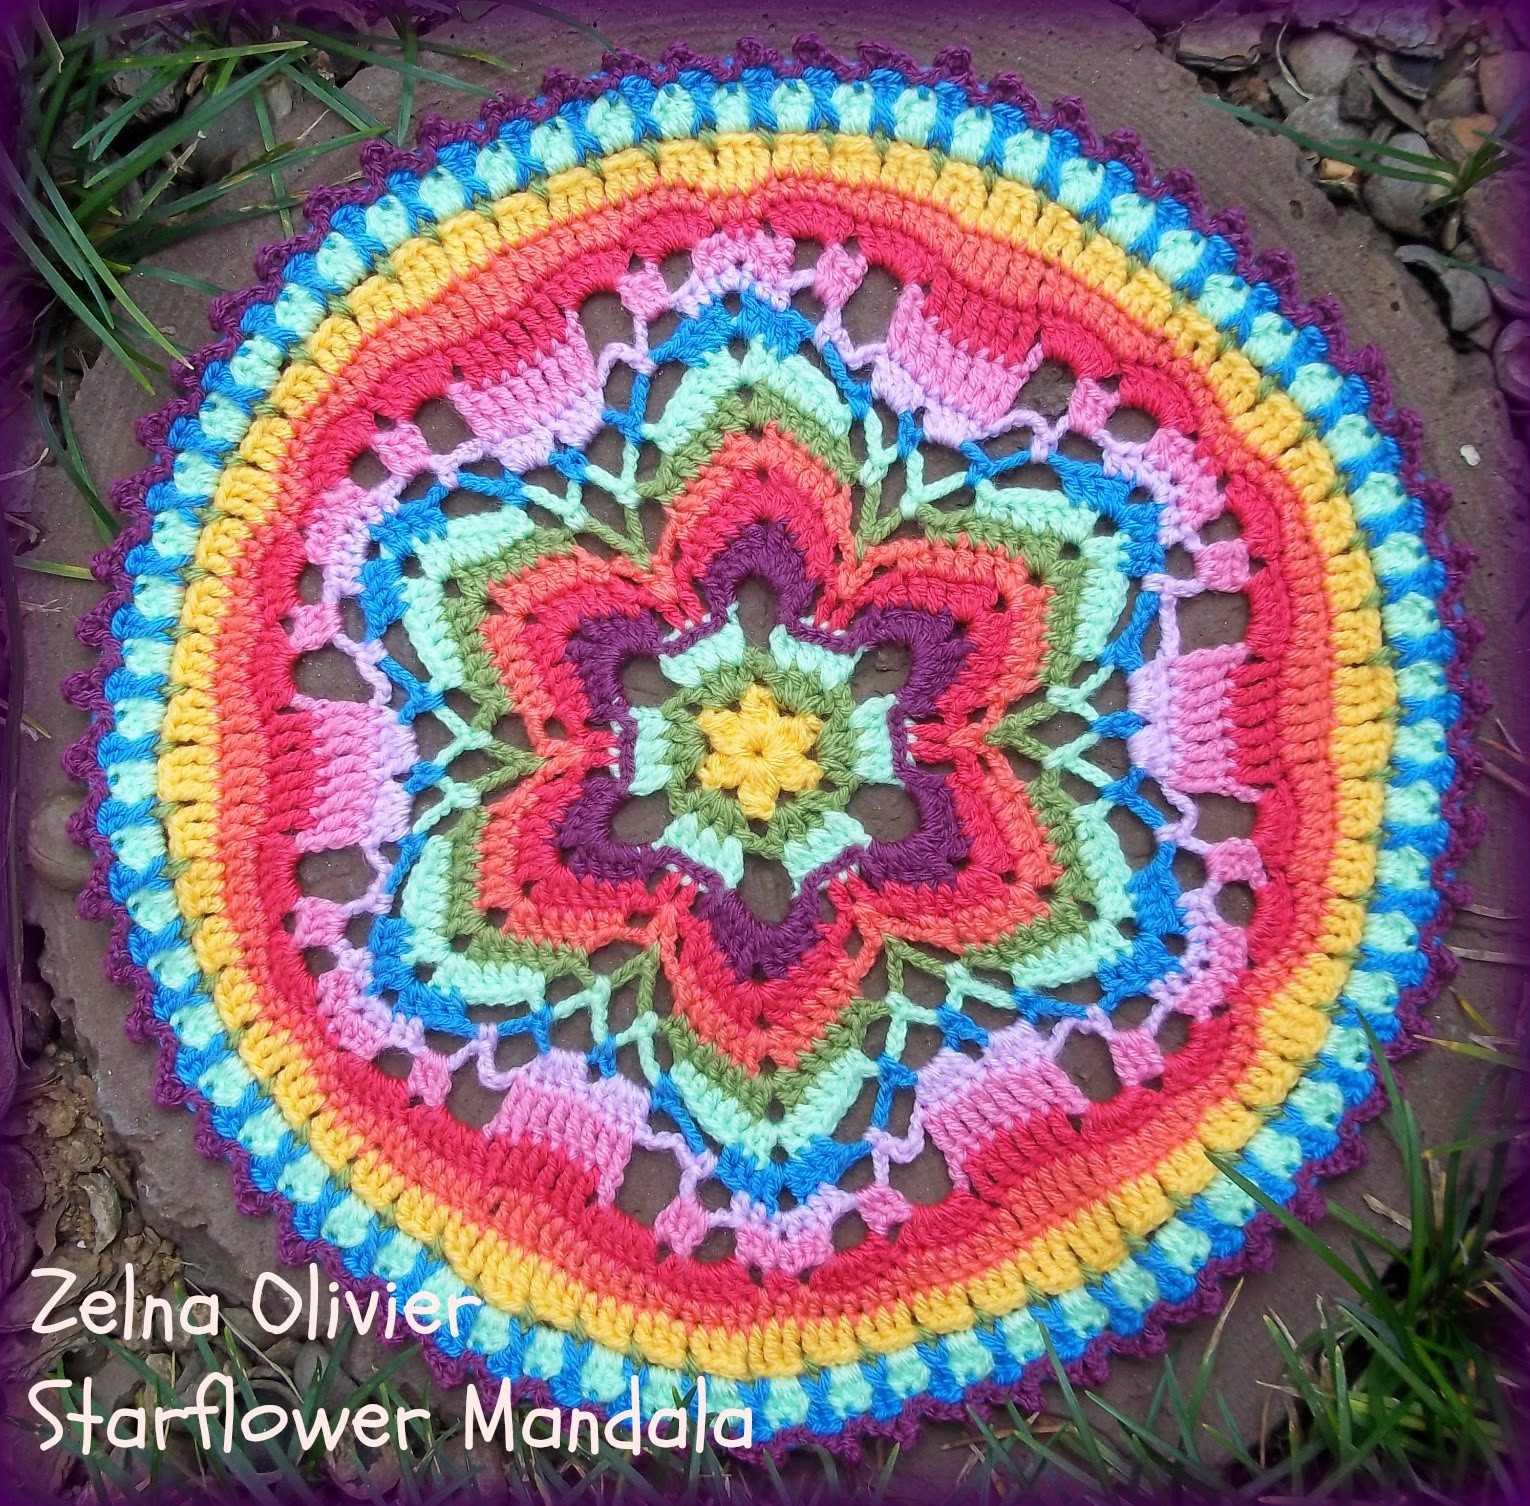 Crochet Mandalas Lovely Zooty Owl S Crafty Blog Starflower Mandala Pattern Of Incredible 41 Pics Crochet Mandalas